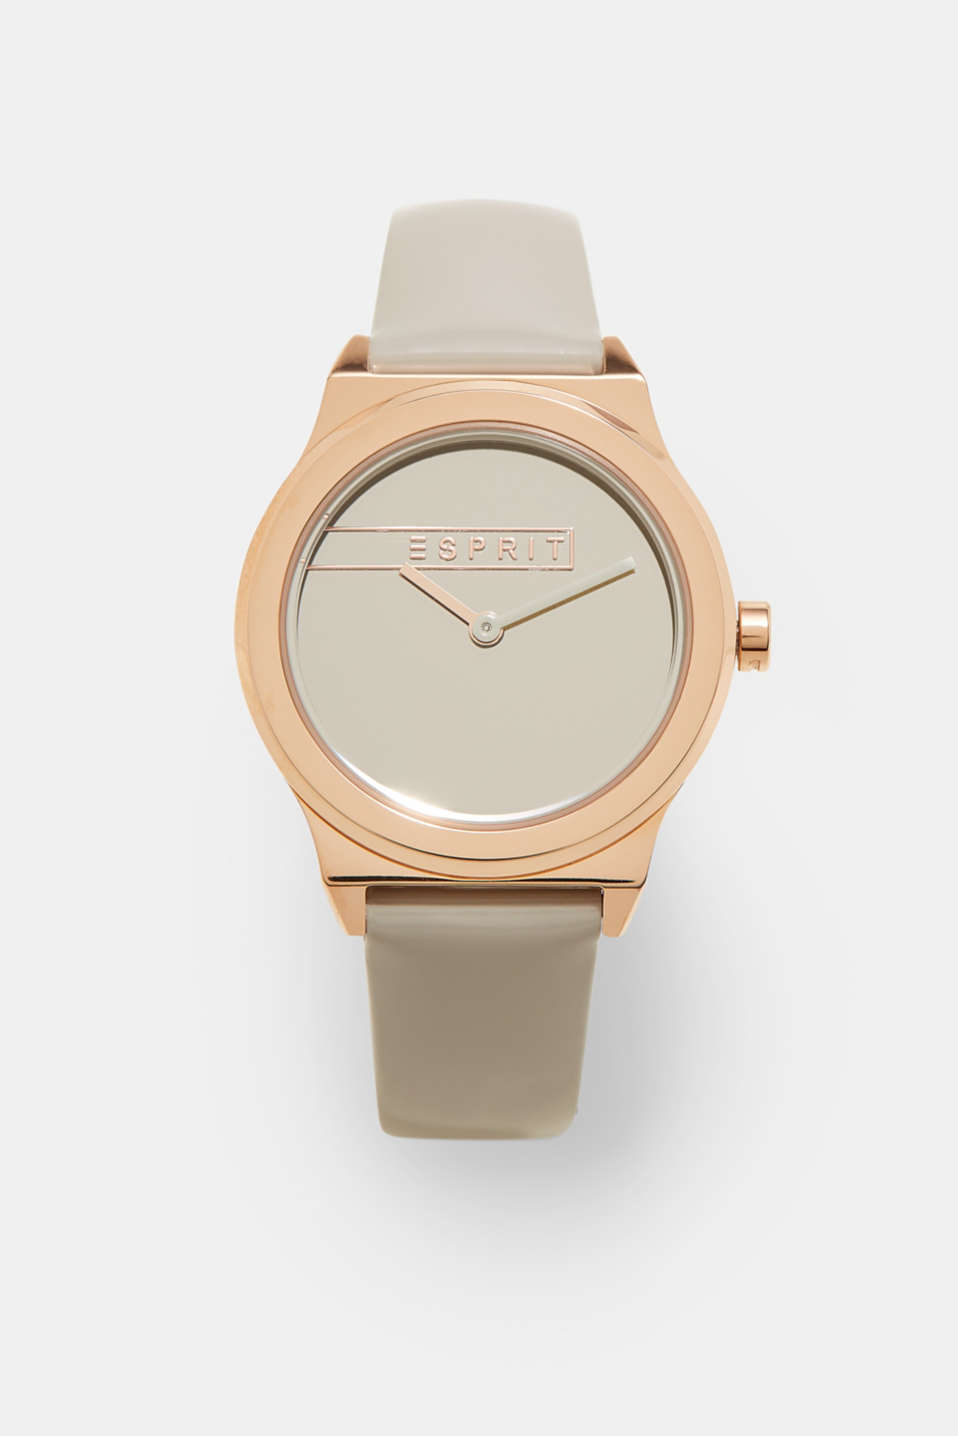 Esprit - Rose gold watch with a patent leather strap